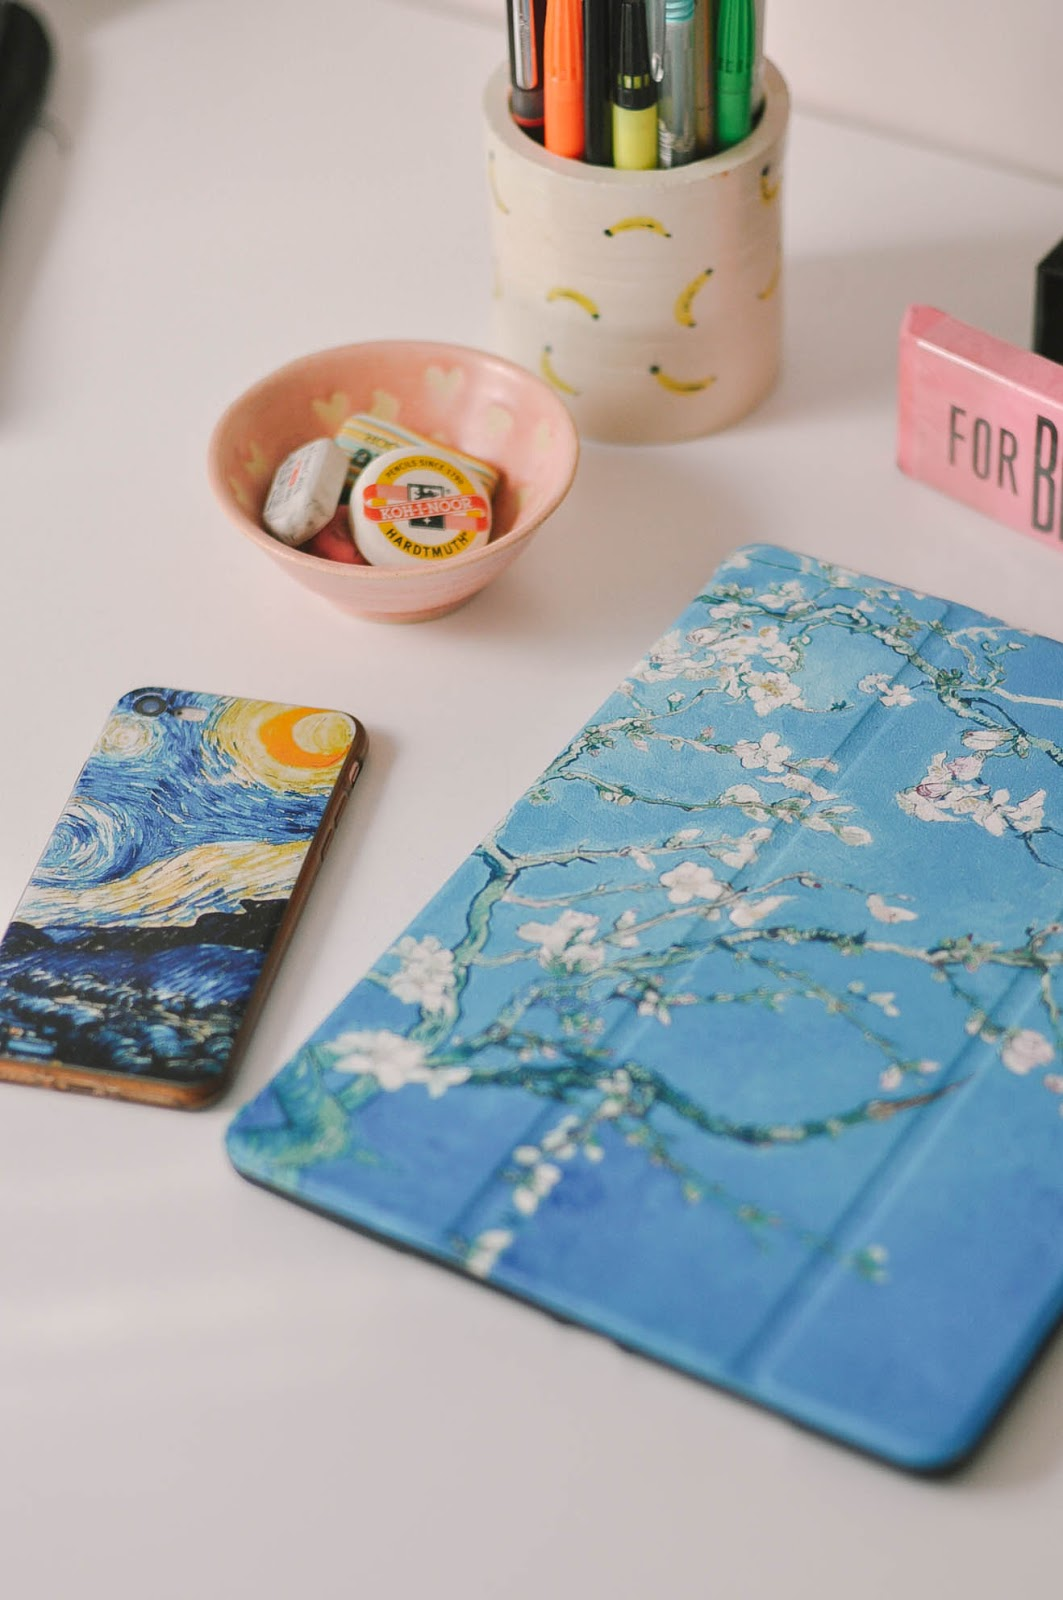 Aliexpress stationery products haul review selection - ipad and iphone case van gogh